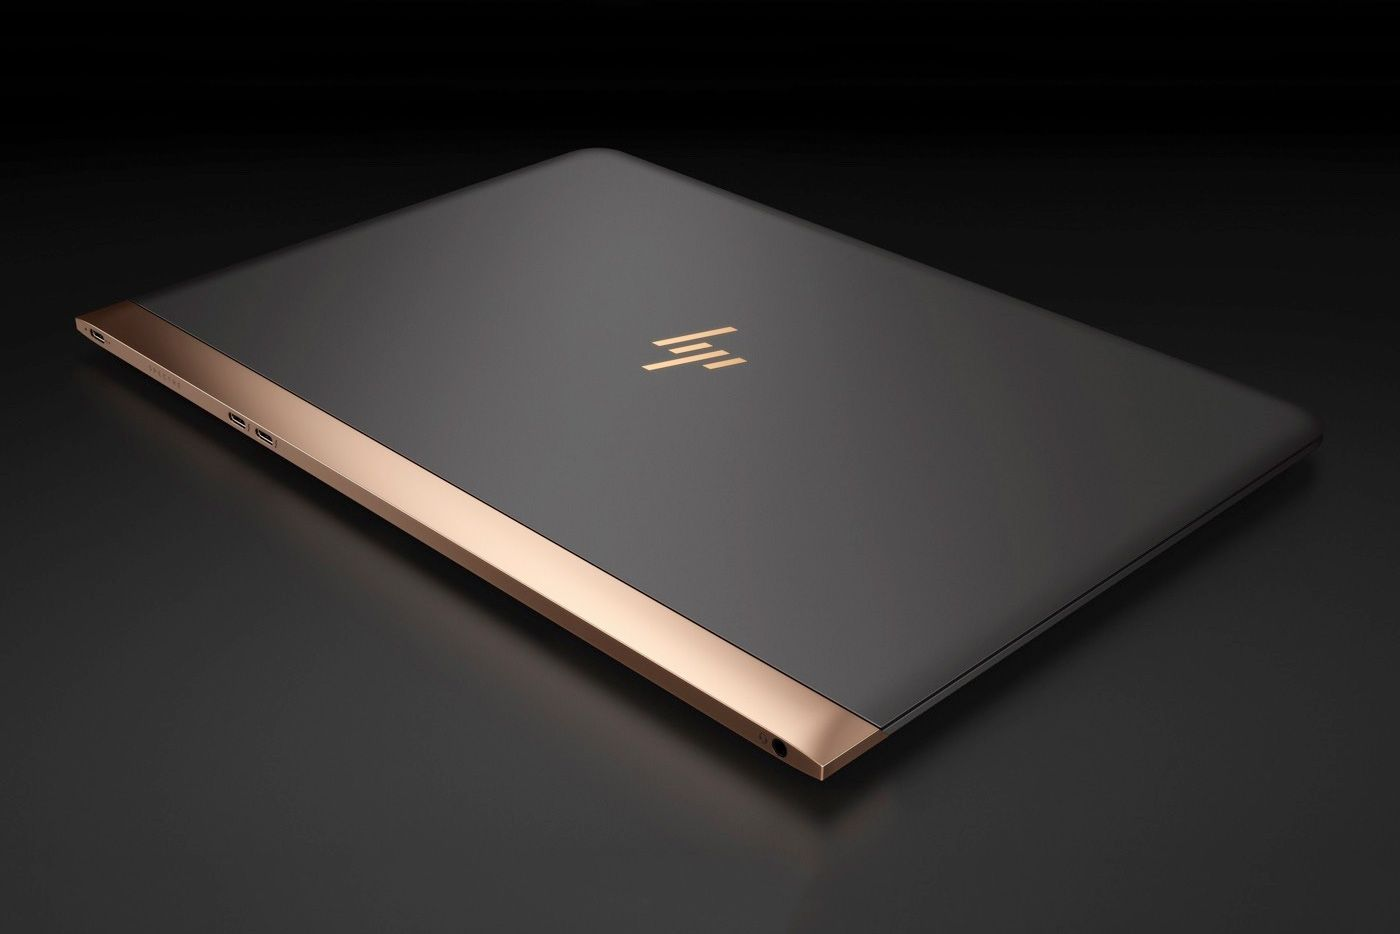 HP Spectre: The Worlds Most Ridiculously Handsome Laptop